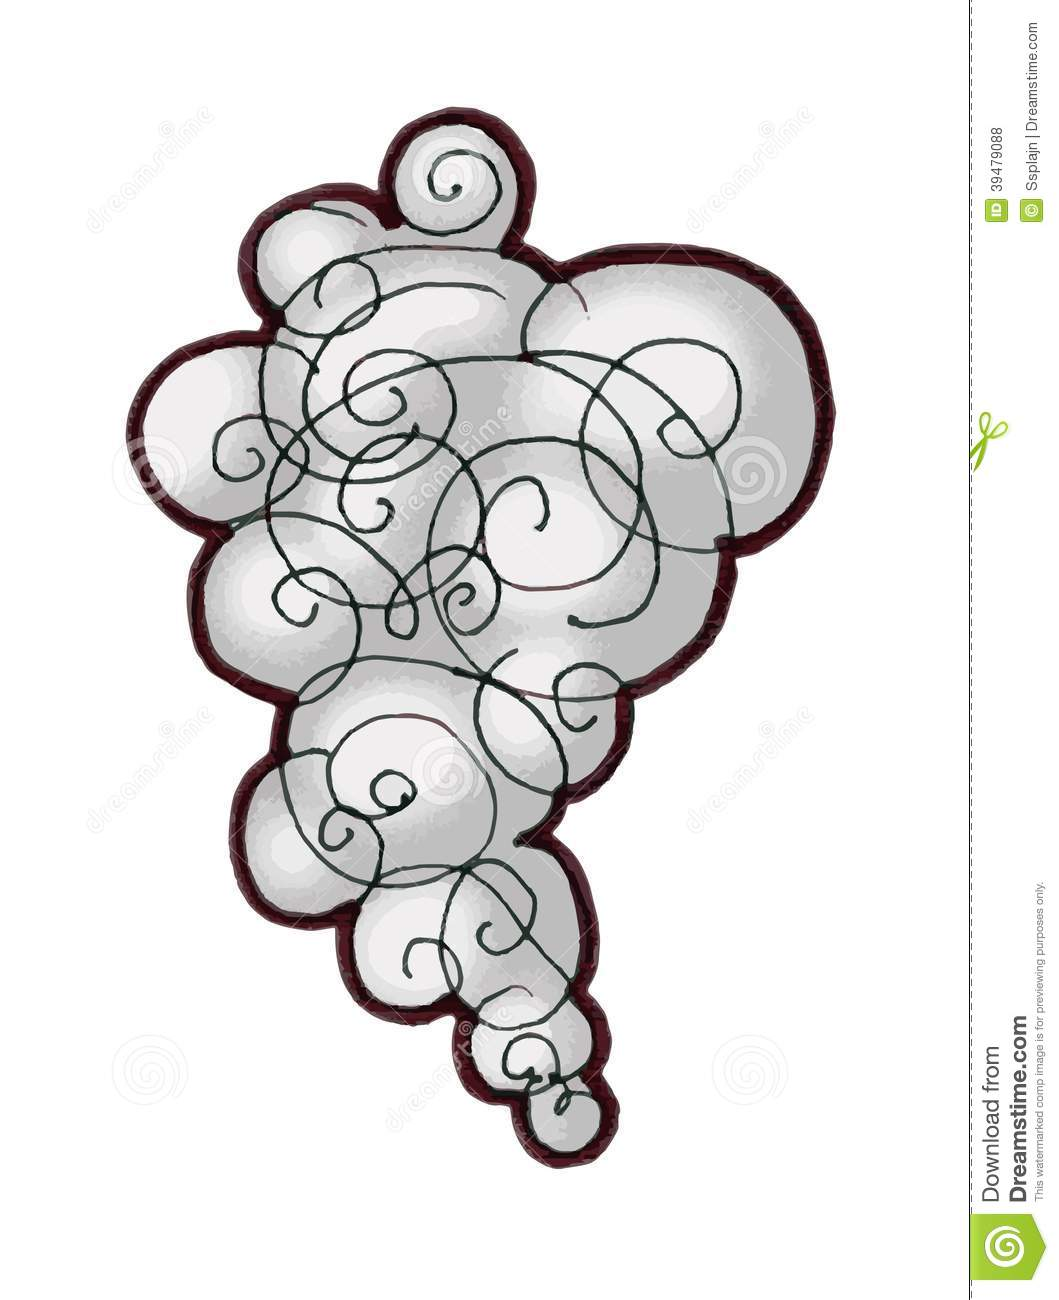 Cloud Of Smoke Clipart Smoke Bubble Cartoon